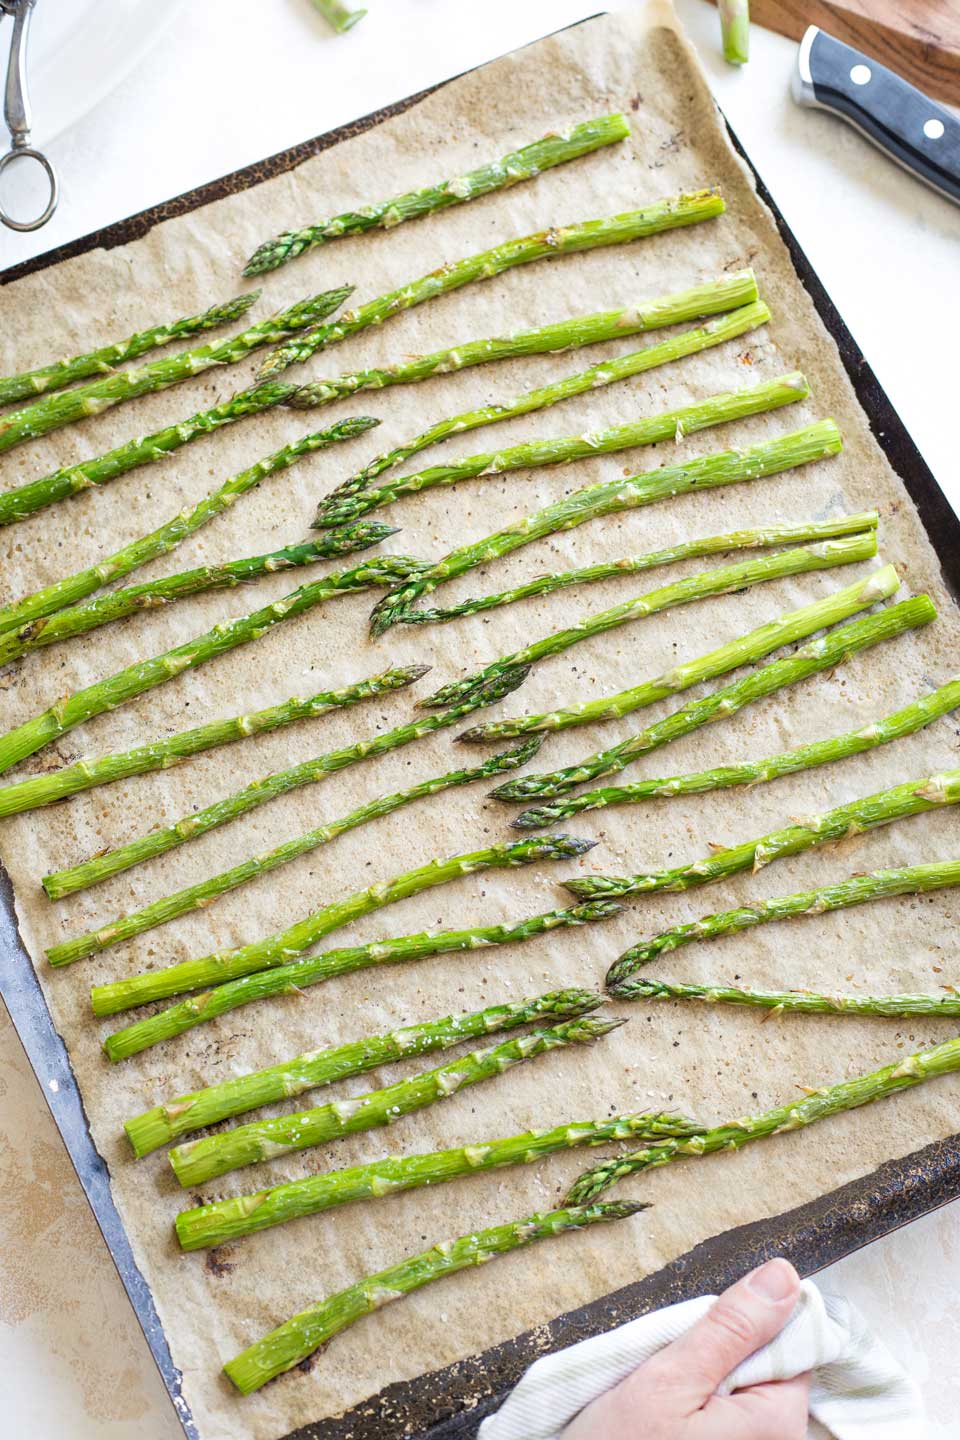 A hand holding the edge of the baking pan just after the asparagus has finished roasting and been taken from the oven.